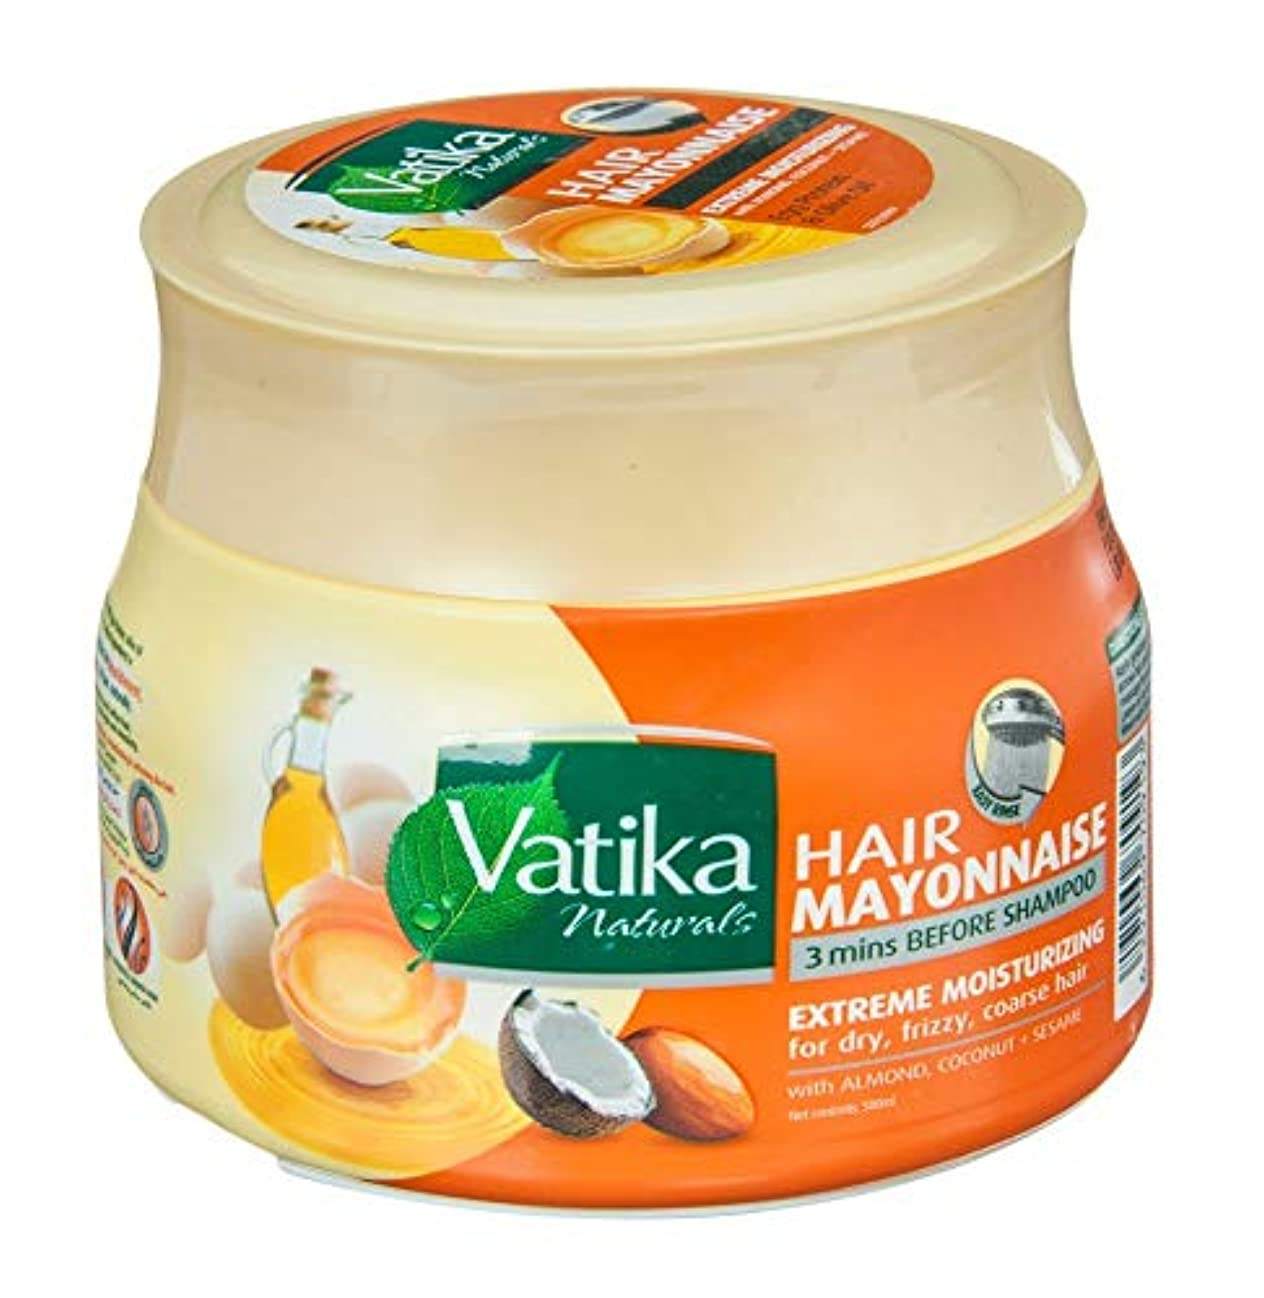 アラスカ海峡ひも難破船Natural Vatika Hair Mayonnaise Moisturizing 3 mins Before Shampoo 500 ml (Extreme Moisturizing (Almond, Coconut, Sesame))